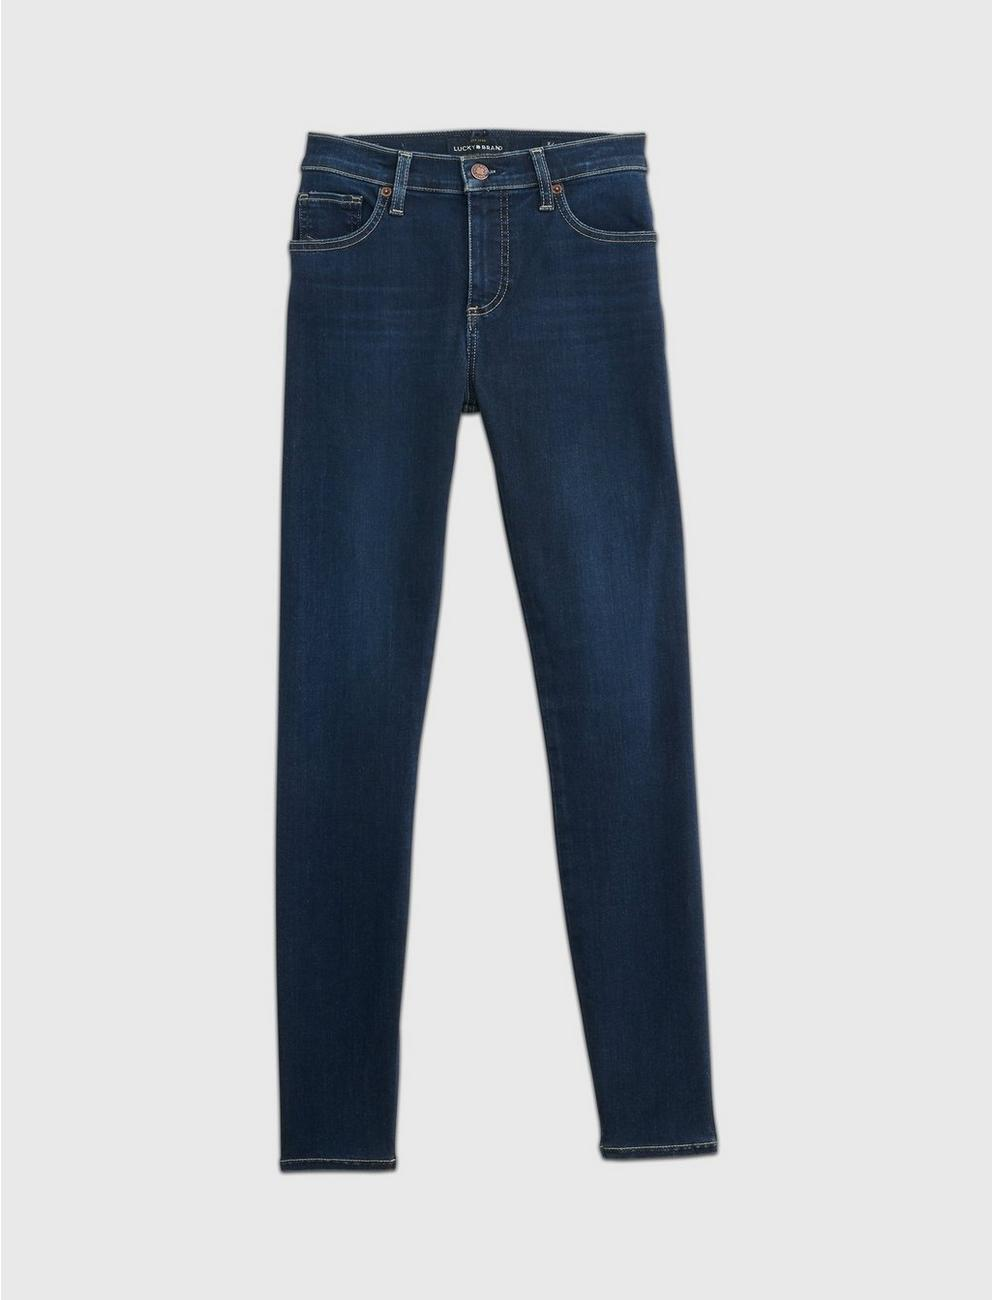 MID RISE AVA SKINNY JEAN, LAKE MARION